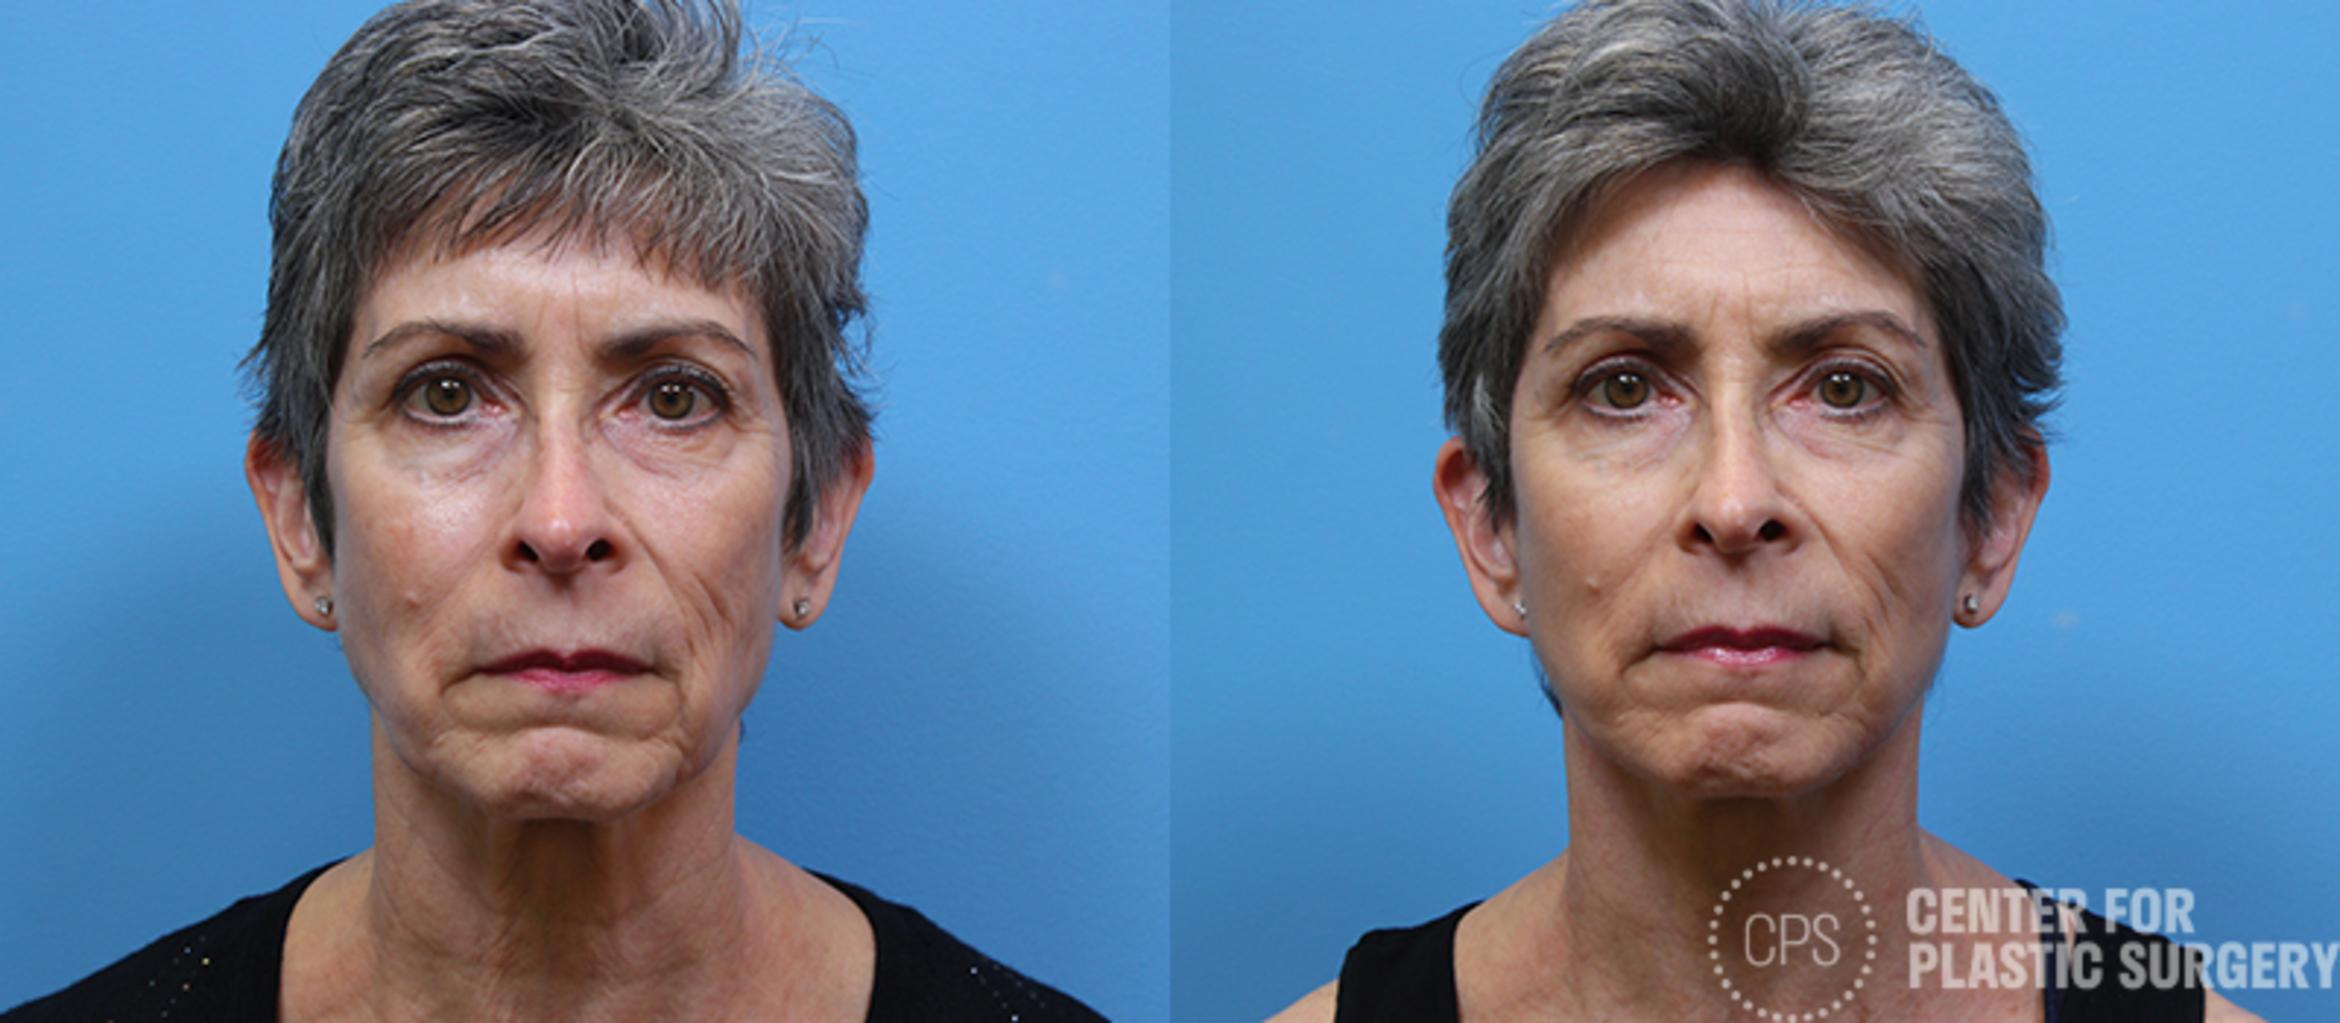 Facelift Case 10 Before & After Front | Annandale, VA & Chevy Chase, MD, Washington D.C. Metropolitan Area | Center for Plastic Surgery